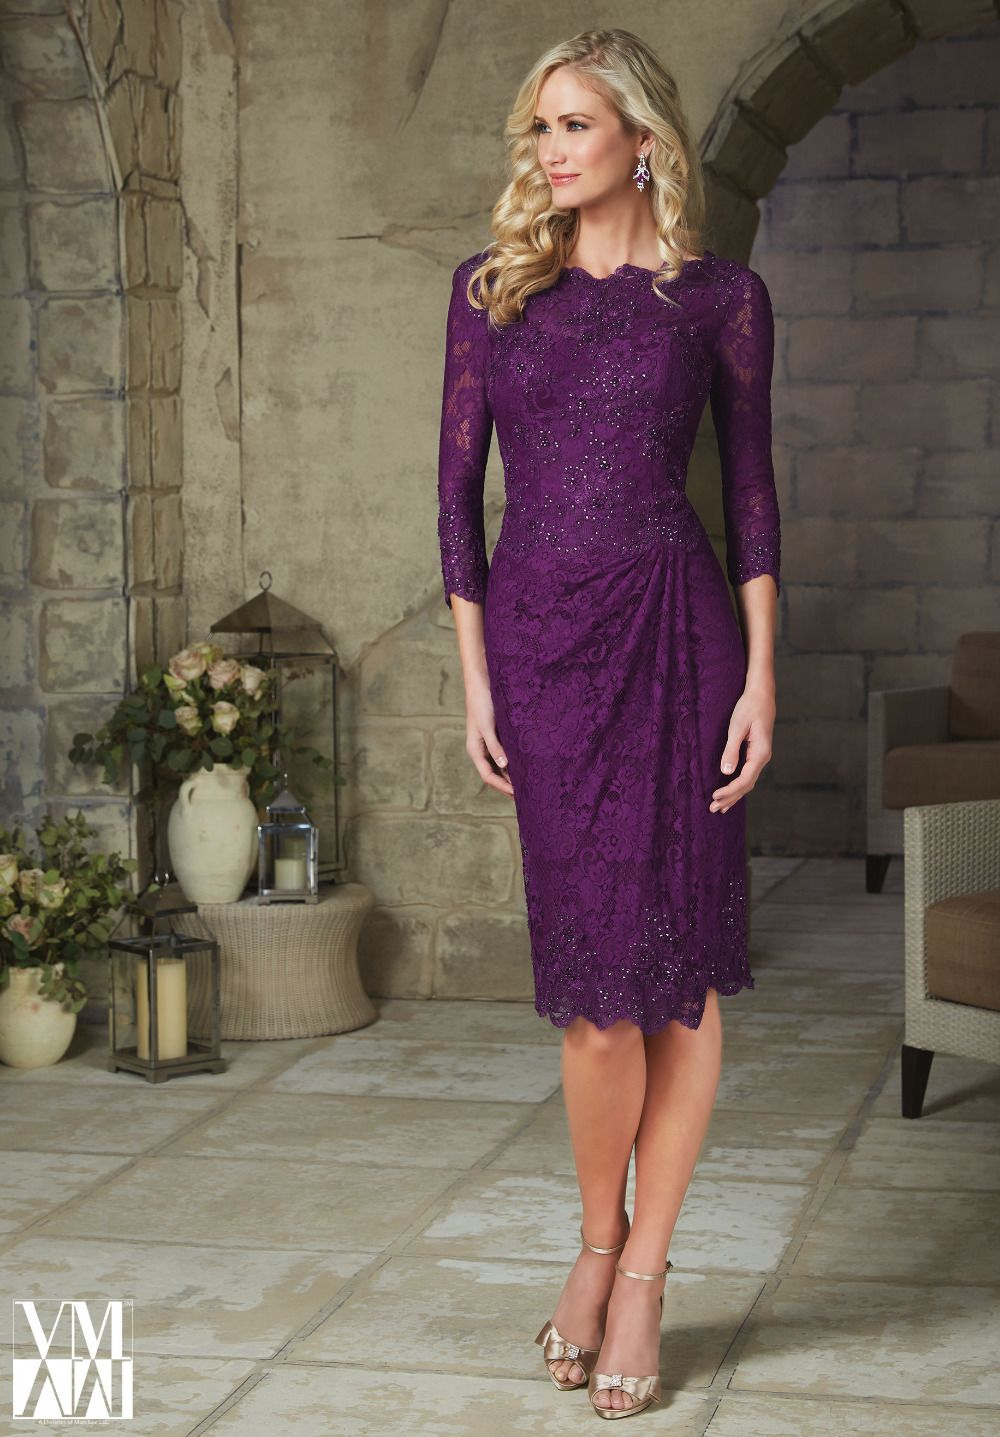 Modest Purple Lace Knee Length Mother Of The Bride Dresses 2015 Three Quarter Sleev Lace Evening Dresses Evening Dresses With Sleeves Evening Dresses Plus Size,Party Wear Maria B Wedding Dresses For Girls 2019